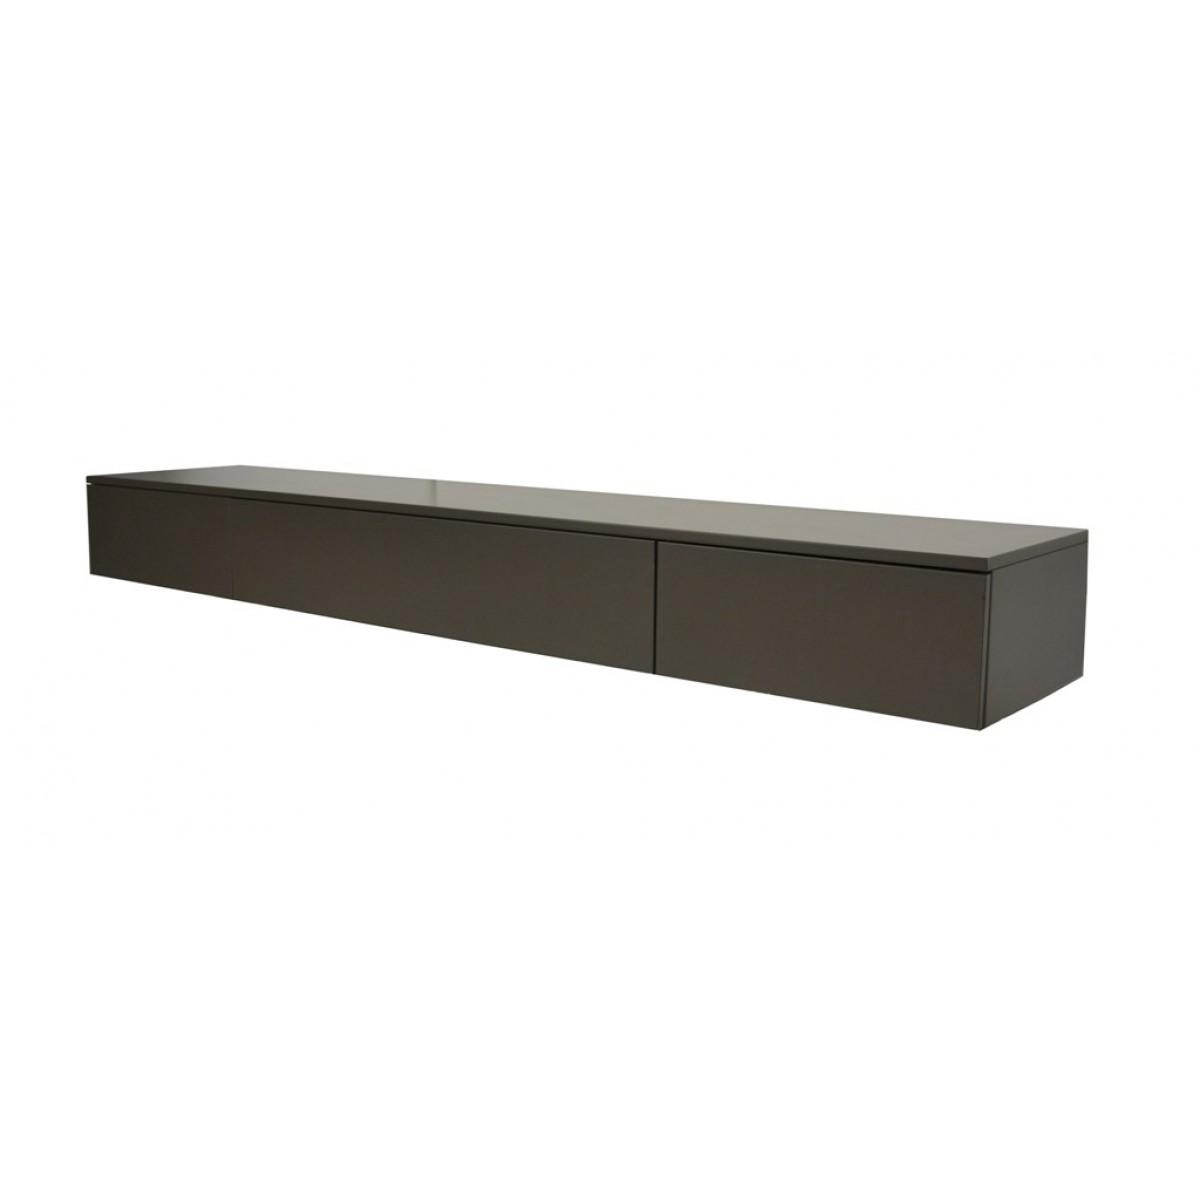 hangend-hang-tv-dressoir-meubel-kleur-basalt-laden-klep